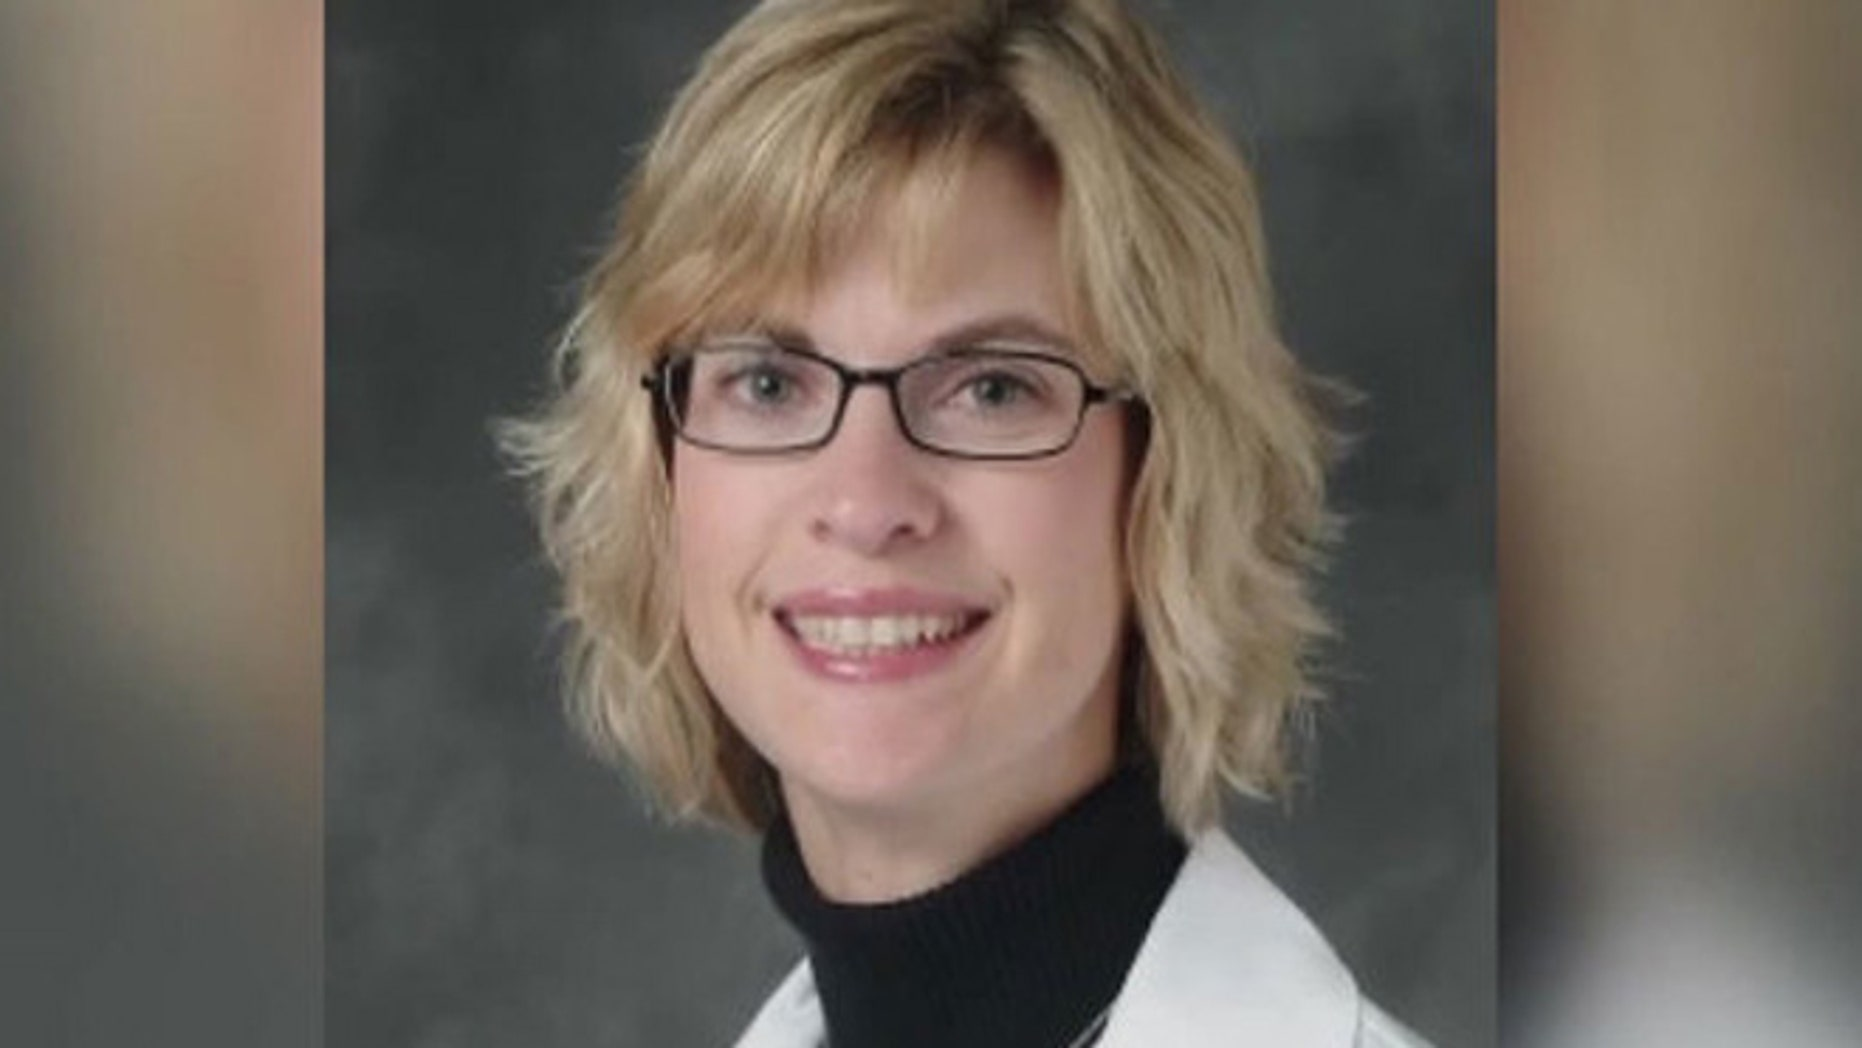 Dr. Cynthia Ray died from injuries sustained helping others involved in a car accident.